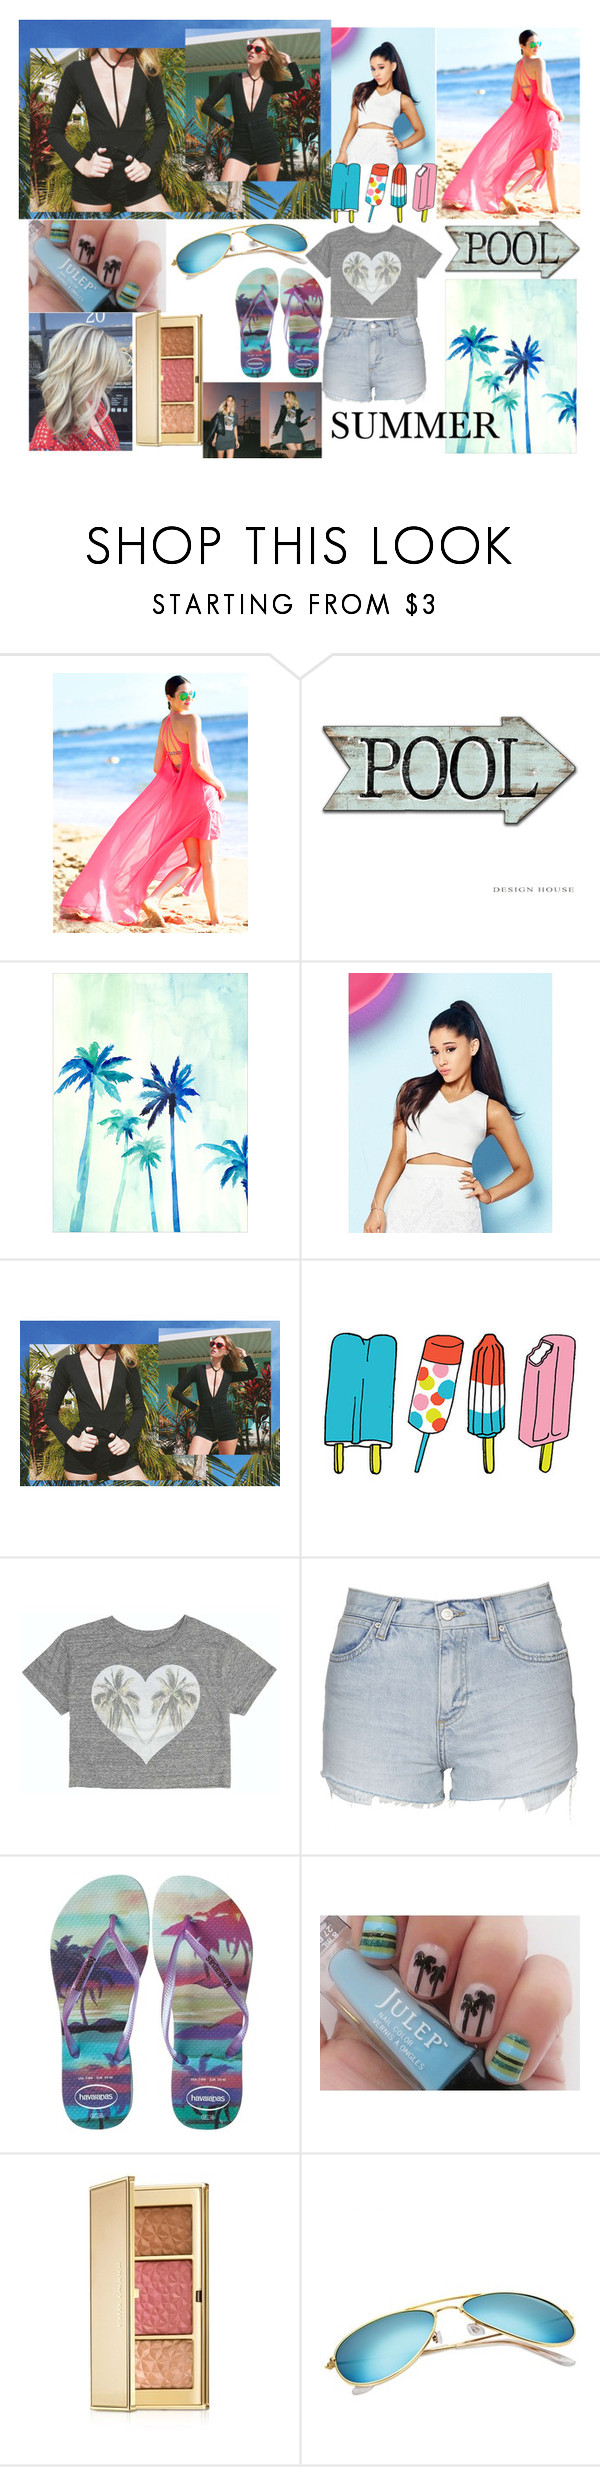 """""""Summer Outfit"""" by sukh-deol ❤ liked on Polyvore featuring Lipsy, Tattly, Billabong, Topshop, Havaianas and Estée Lauder"""